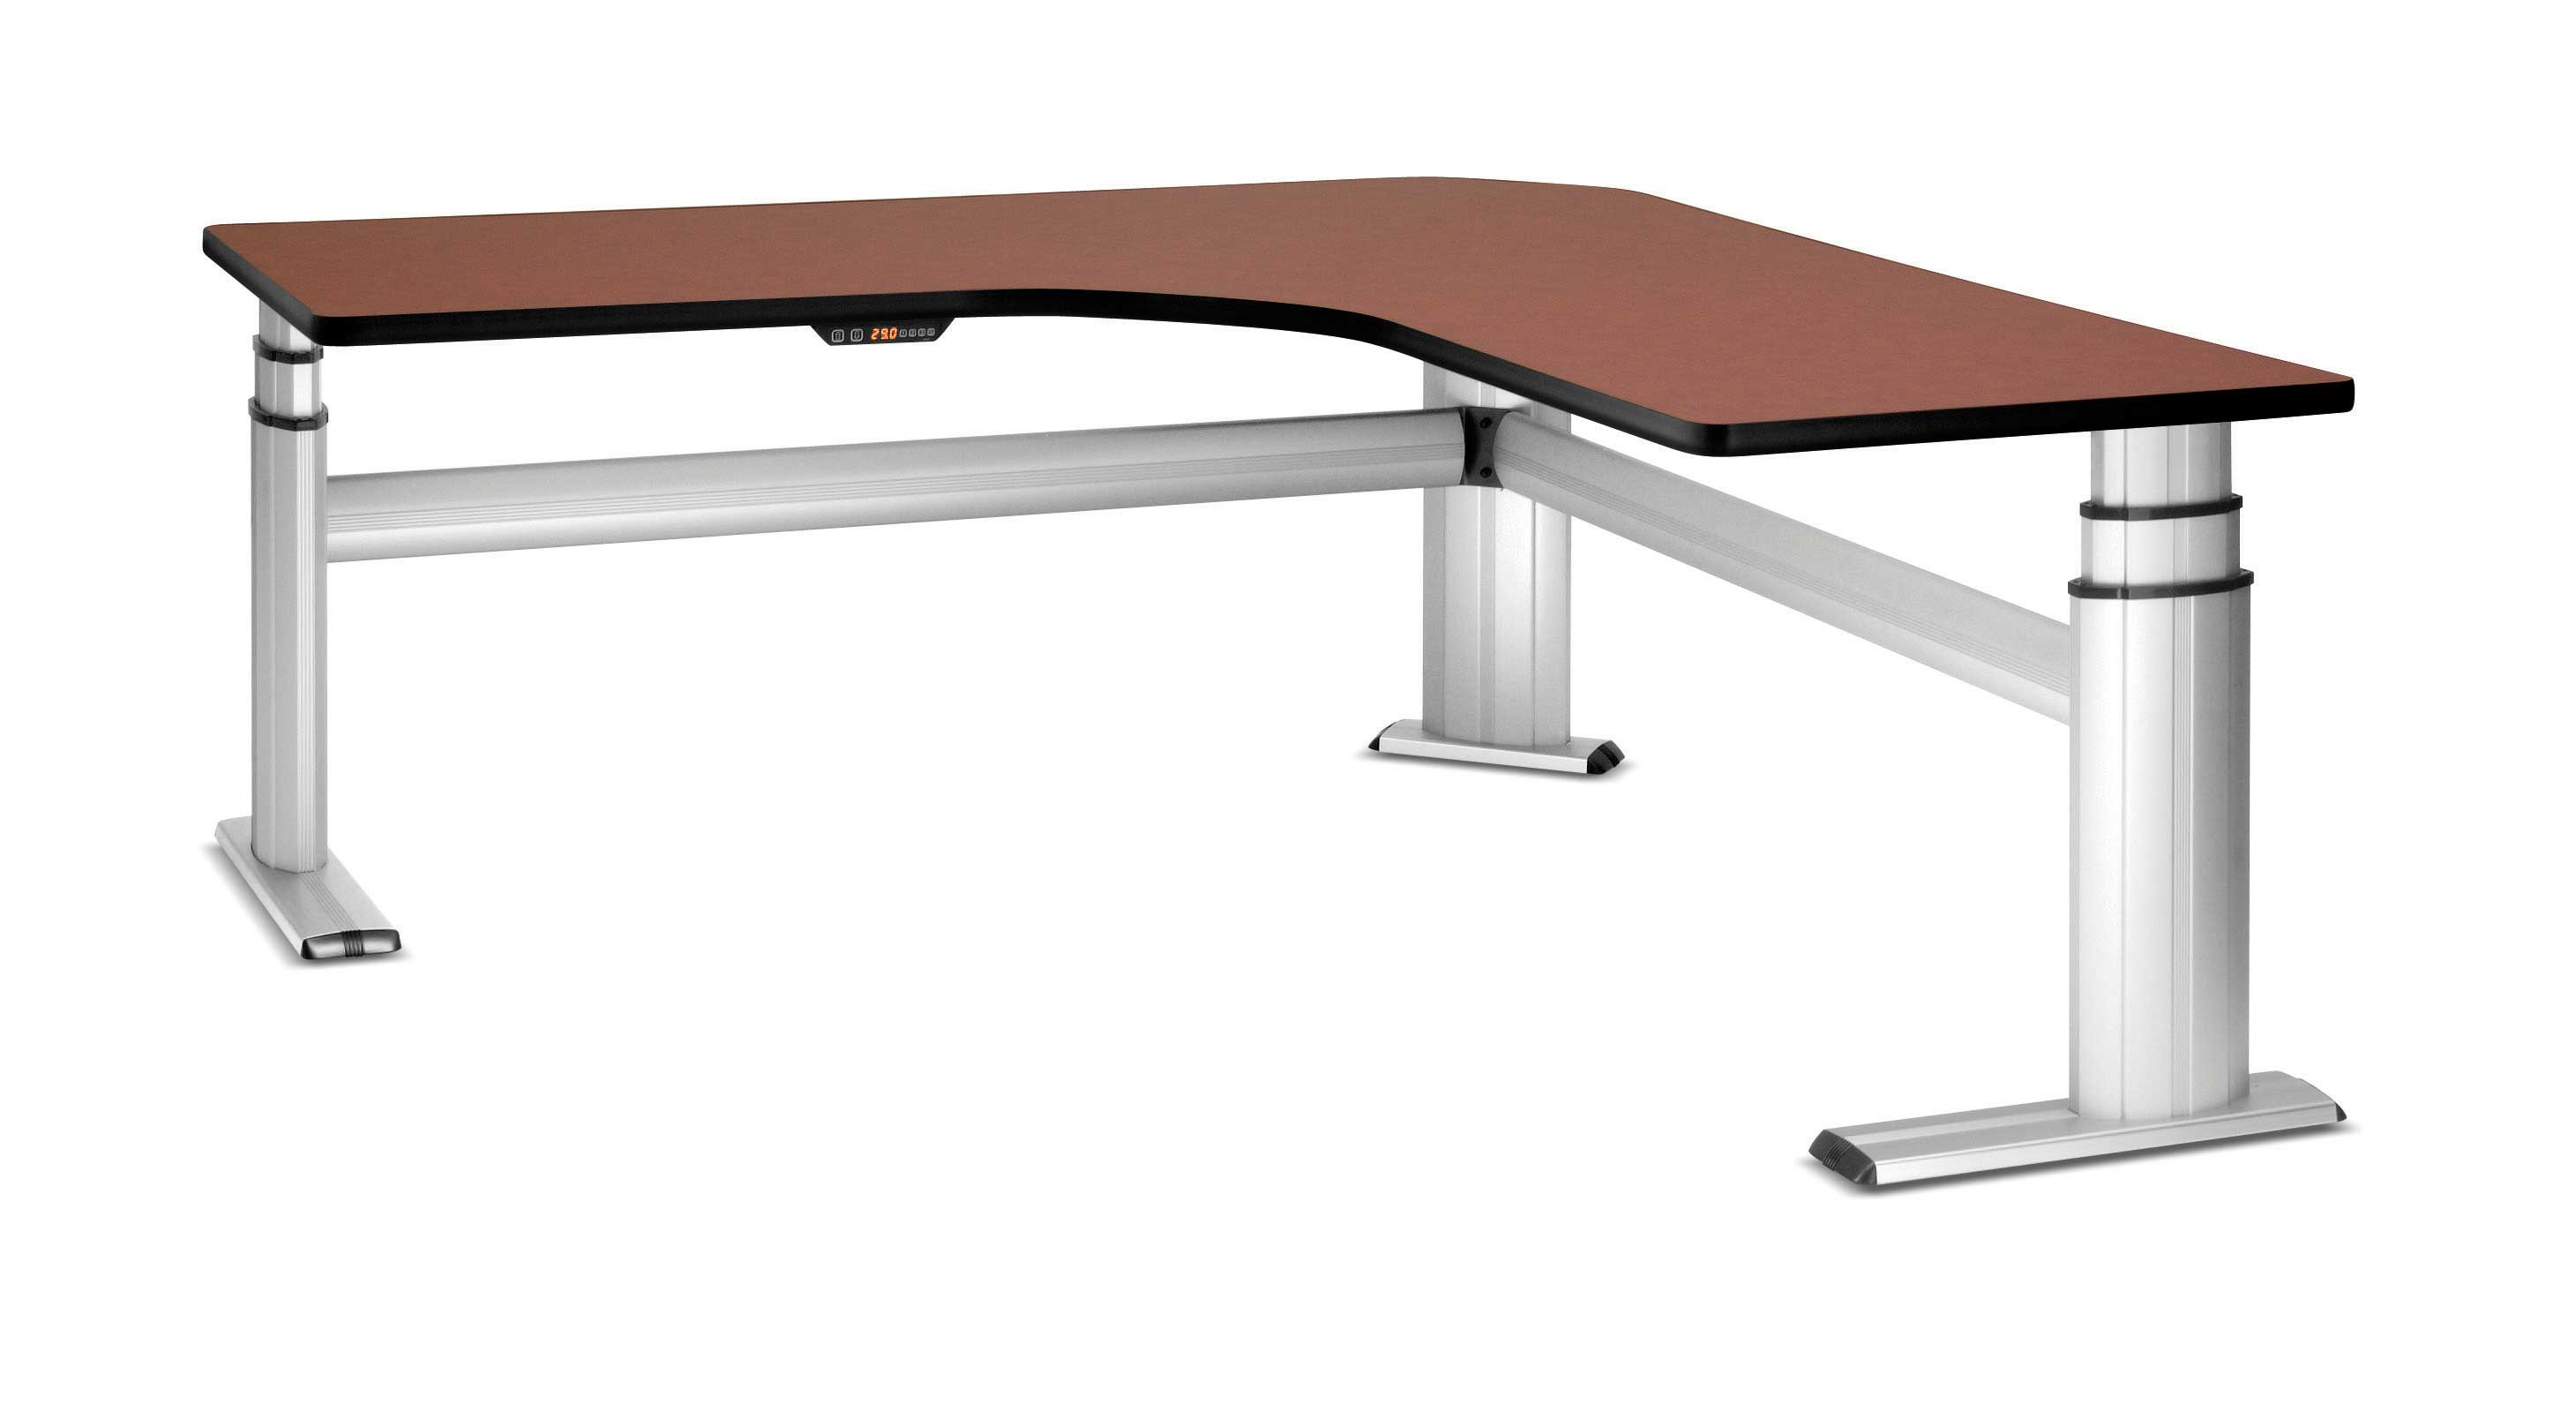 Super Adjustable Desk Adjustable Desk Corner Download Free Architecture Designs Grimeyleaguecom